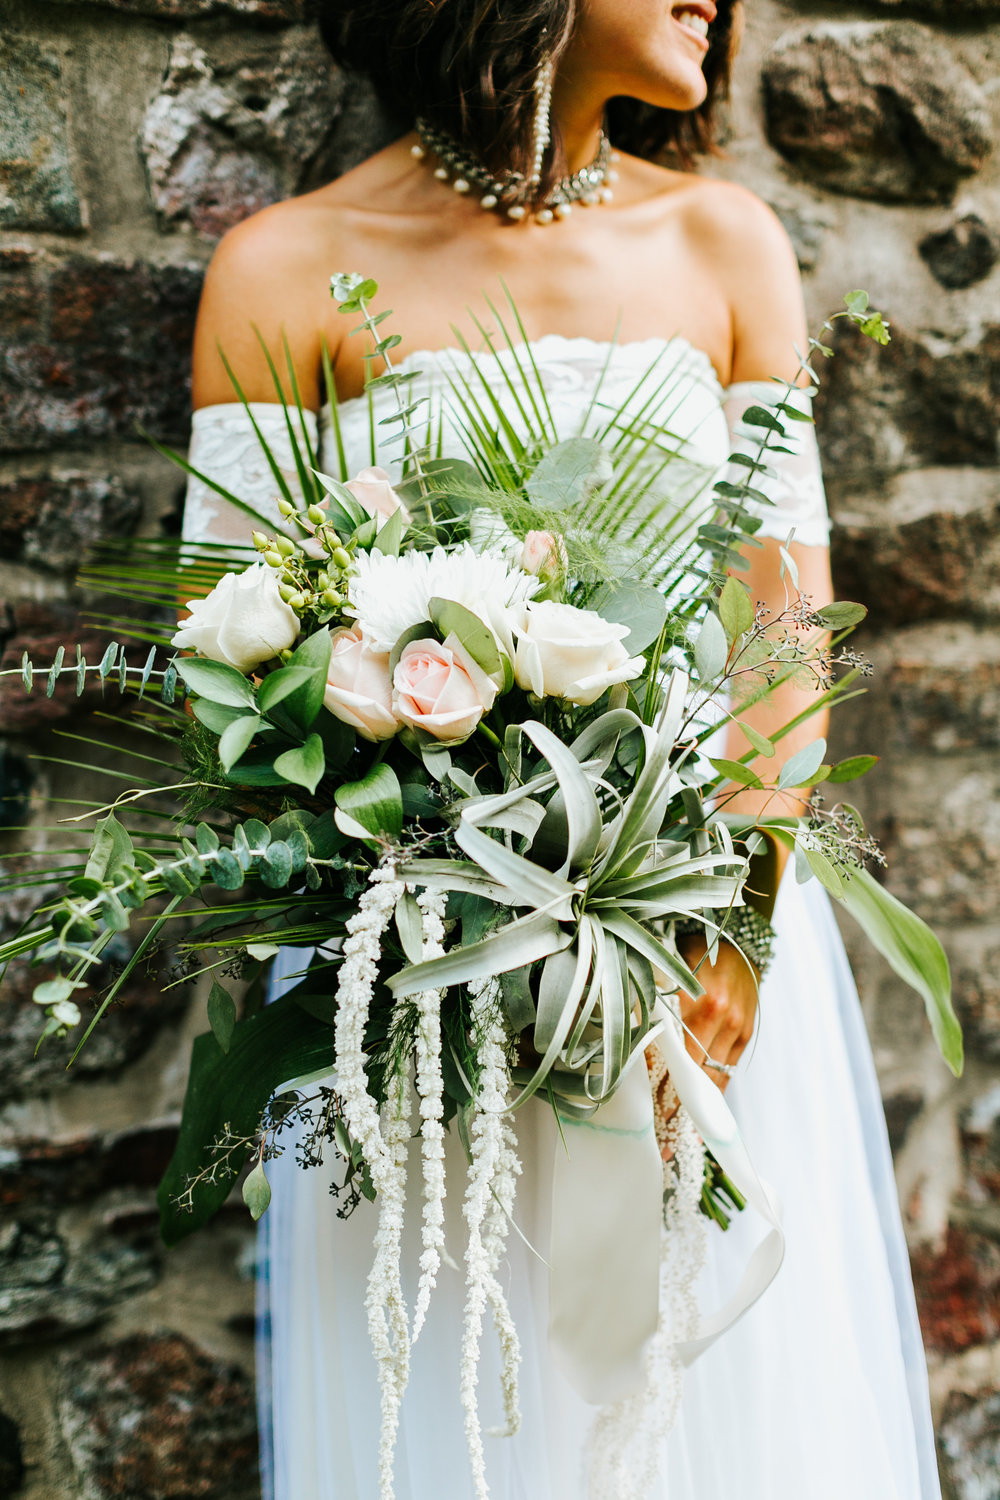 Historic Yellow Springs Wedding with DIY Details and Boho Vibe with Wedding Coordination by Heart & Dash Images by Danfredo Bride Created her own succulent bouquet